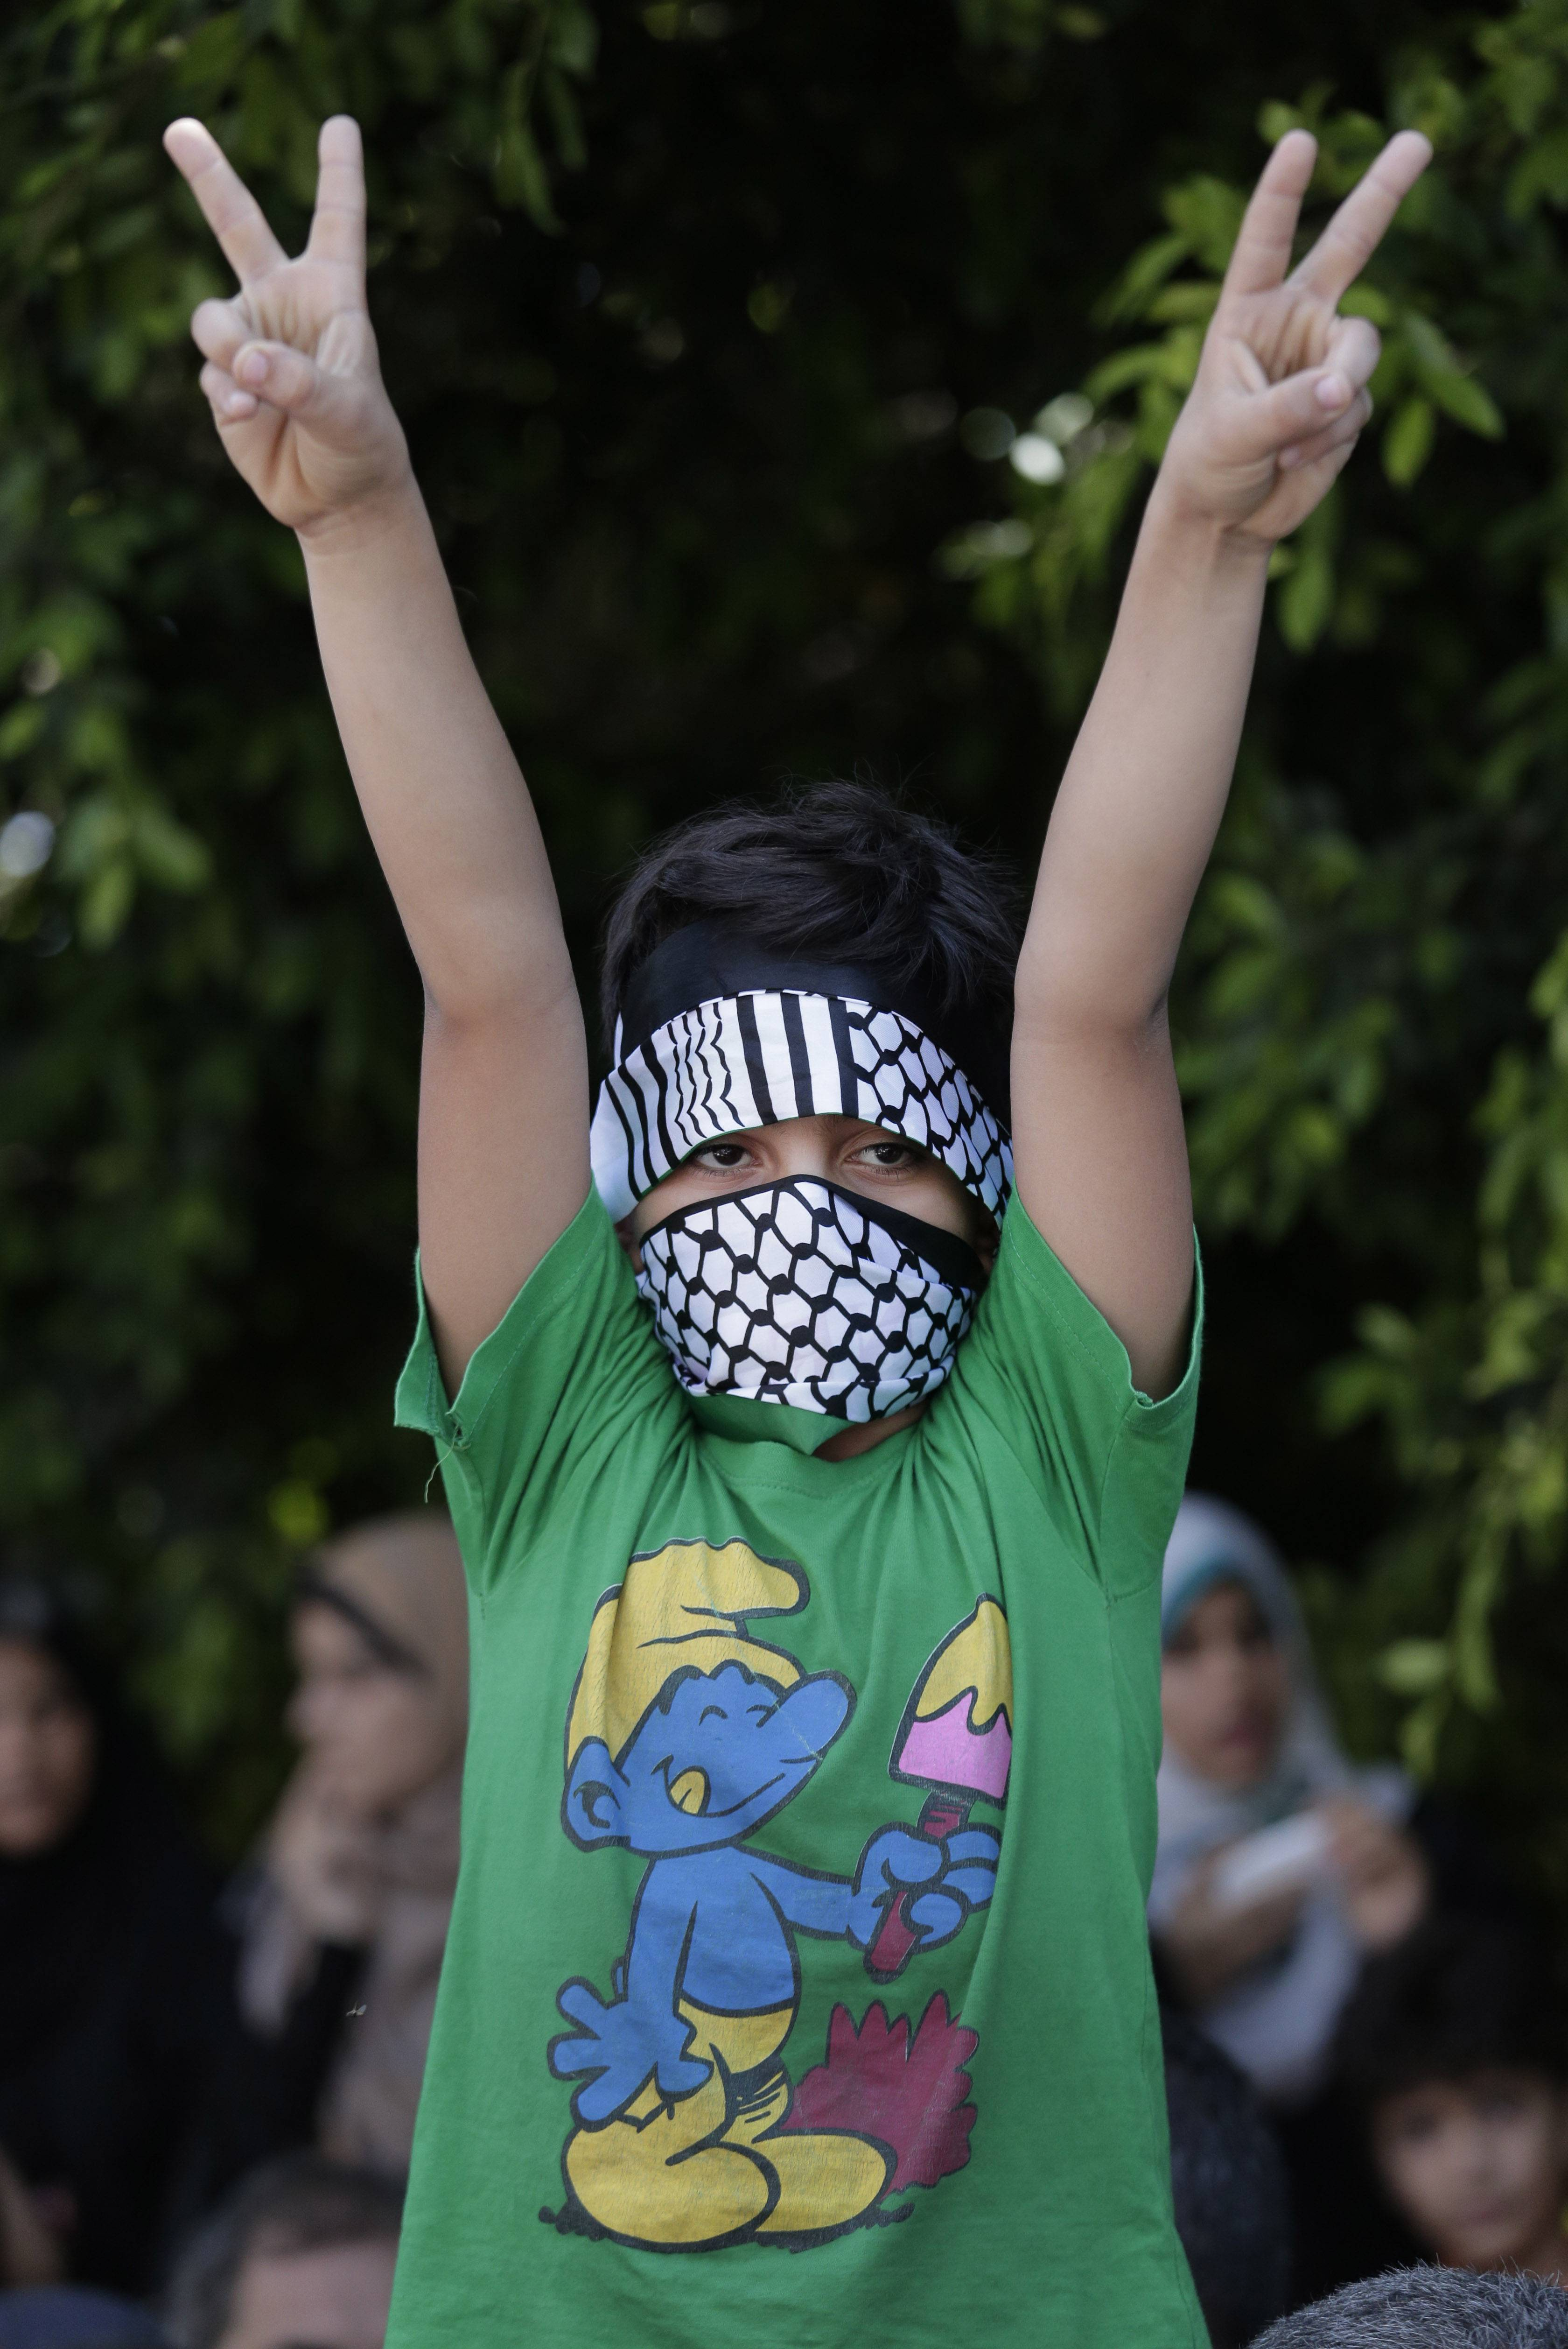 A Palestinian boy flashes the V-sign as he participates in a Hamas rally in Gaza City, Gaza Strip, Thursday, Aug. 7, 2014. Thursday's rally drew several thousand supporters and a senior Hamas official has told supporters at the rally that the war with Israel won't be over until the group's political demands are met.